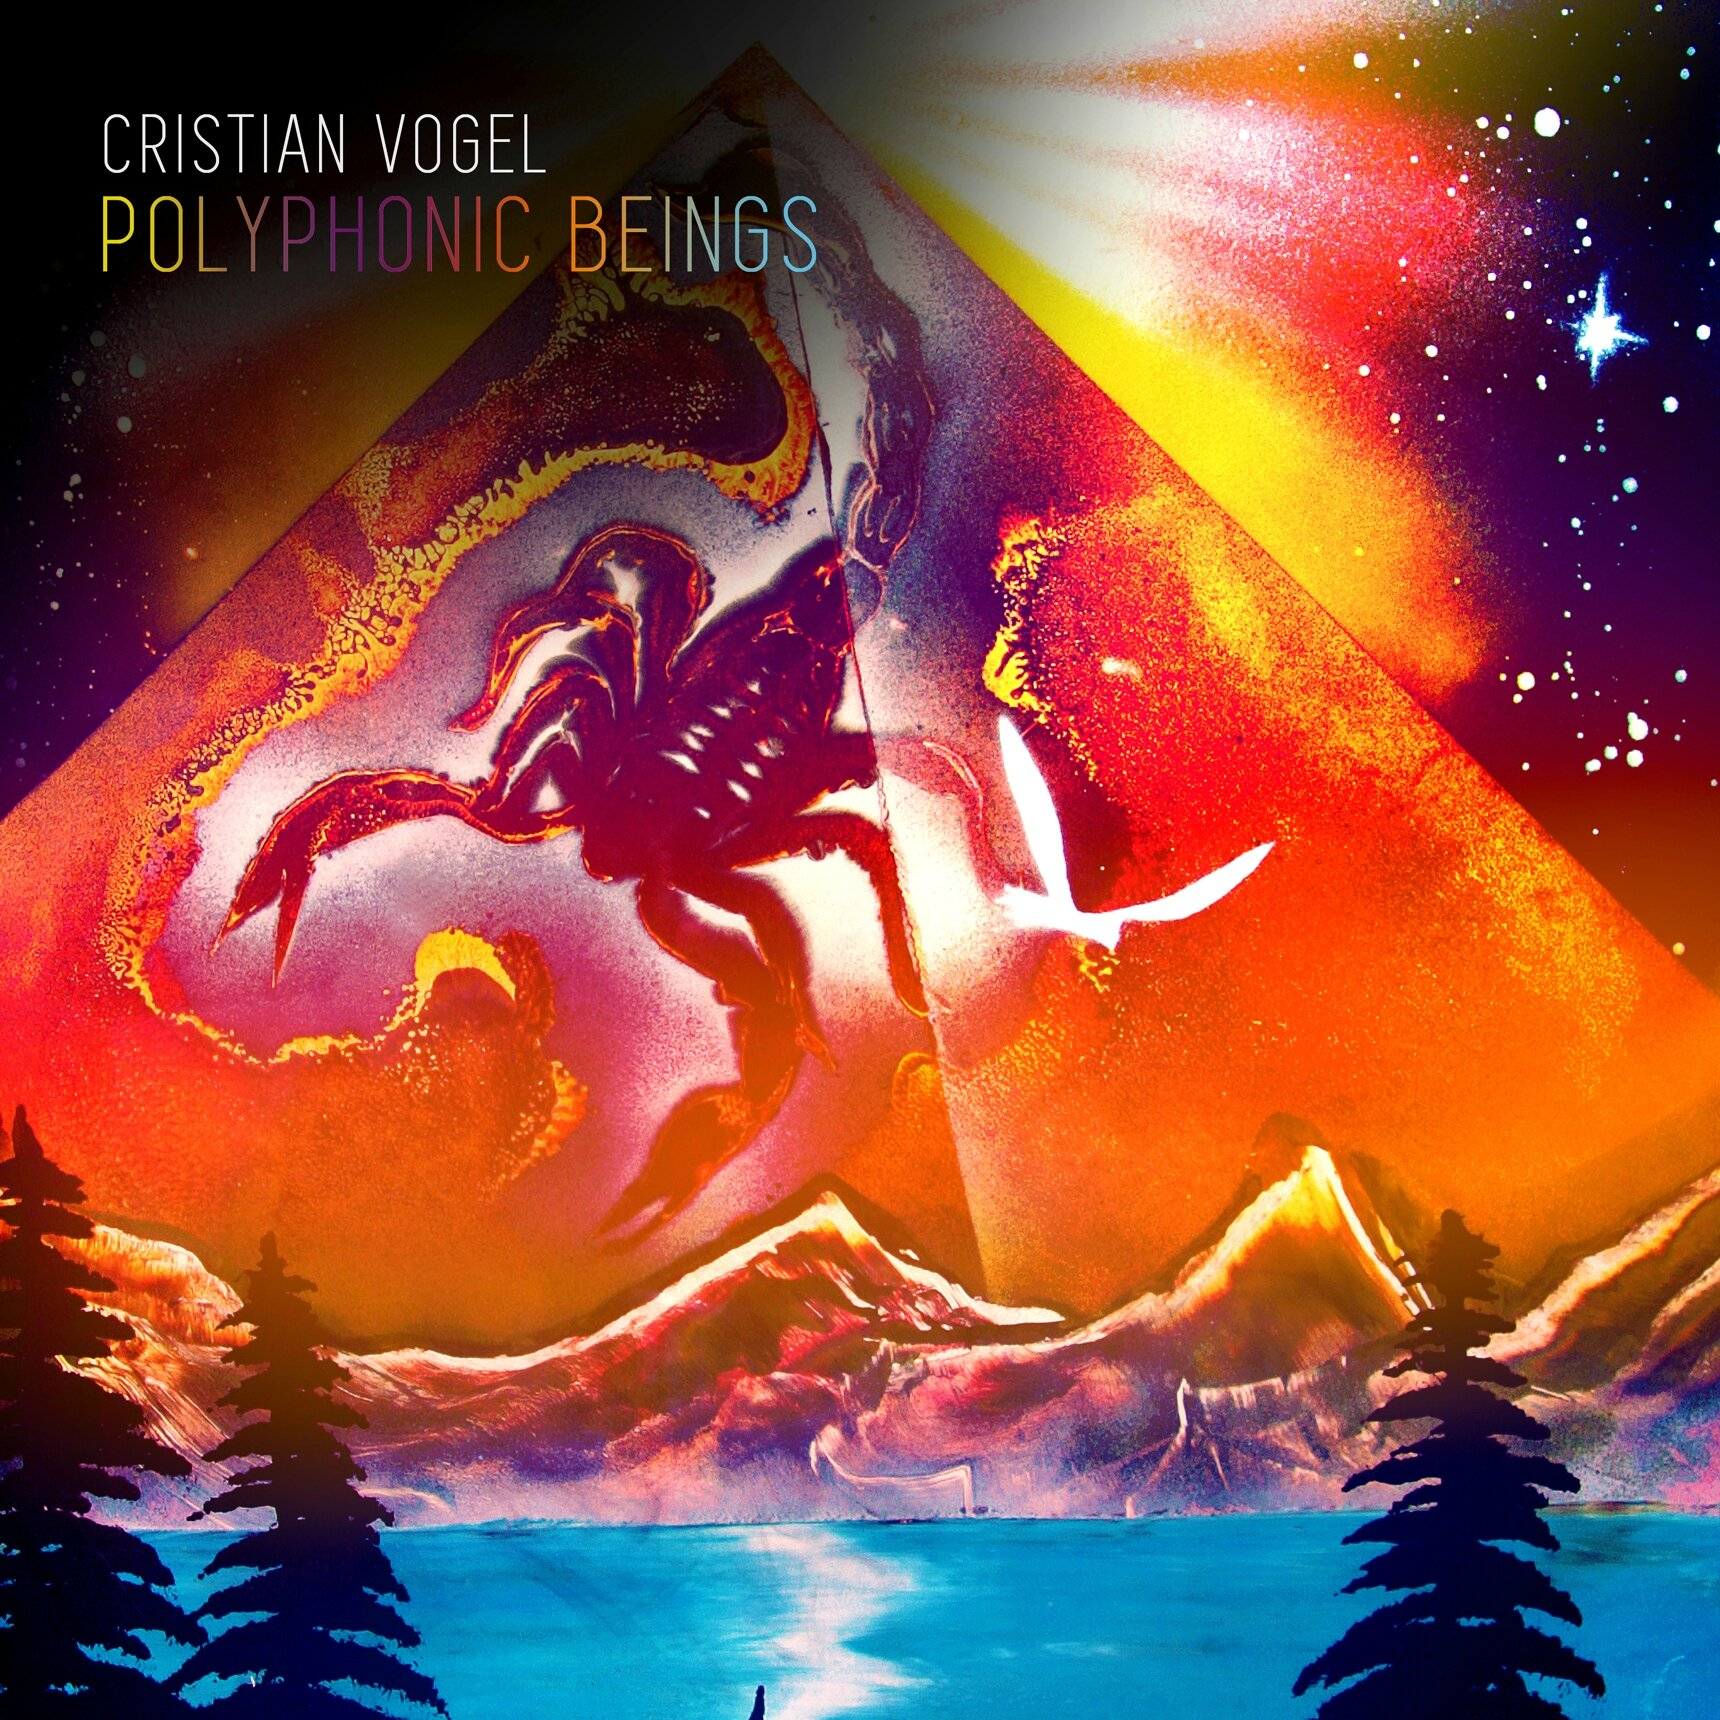 Cristian Vogel - Polyphonic Beings